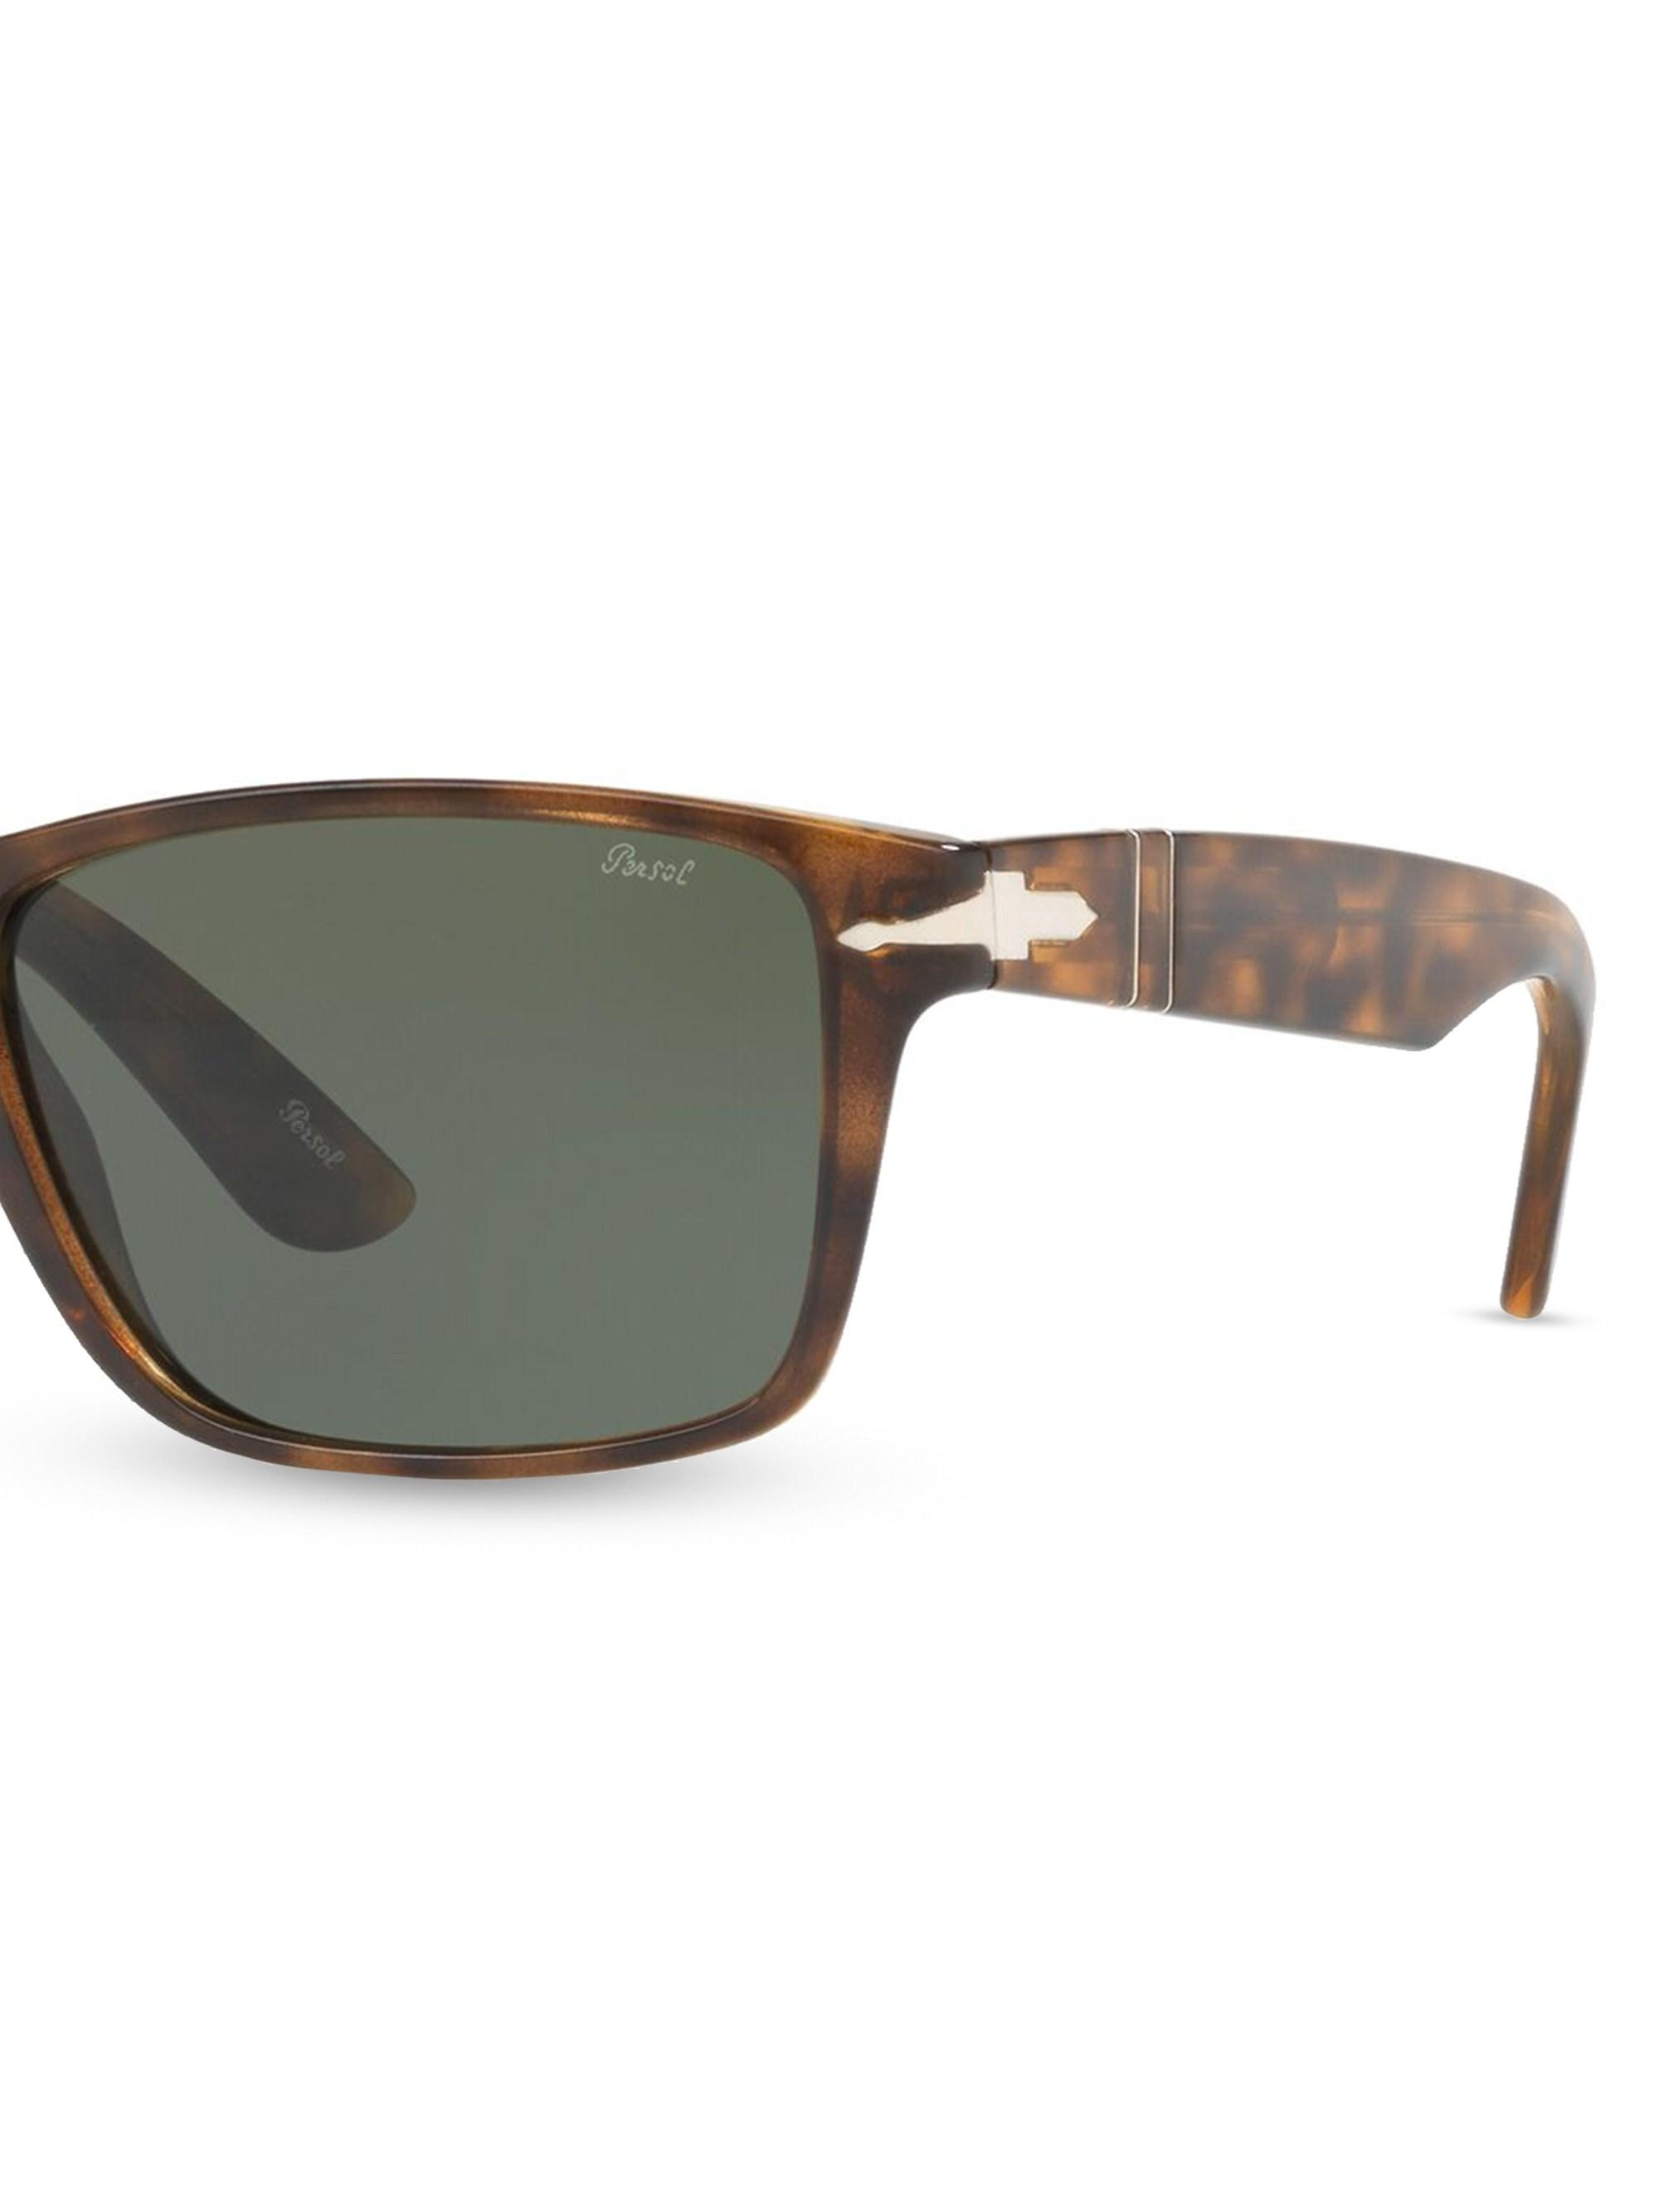 7b24637727274 Persol Men s 58mm Rectangular Sunglasses - Dark Havana in Brown for Men -  Lyst